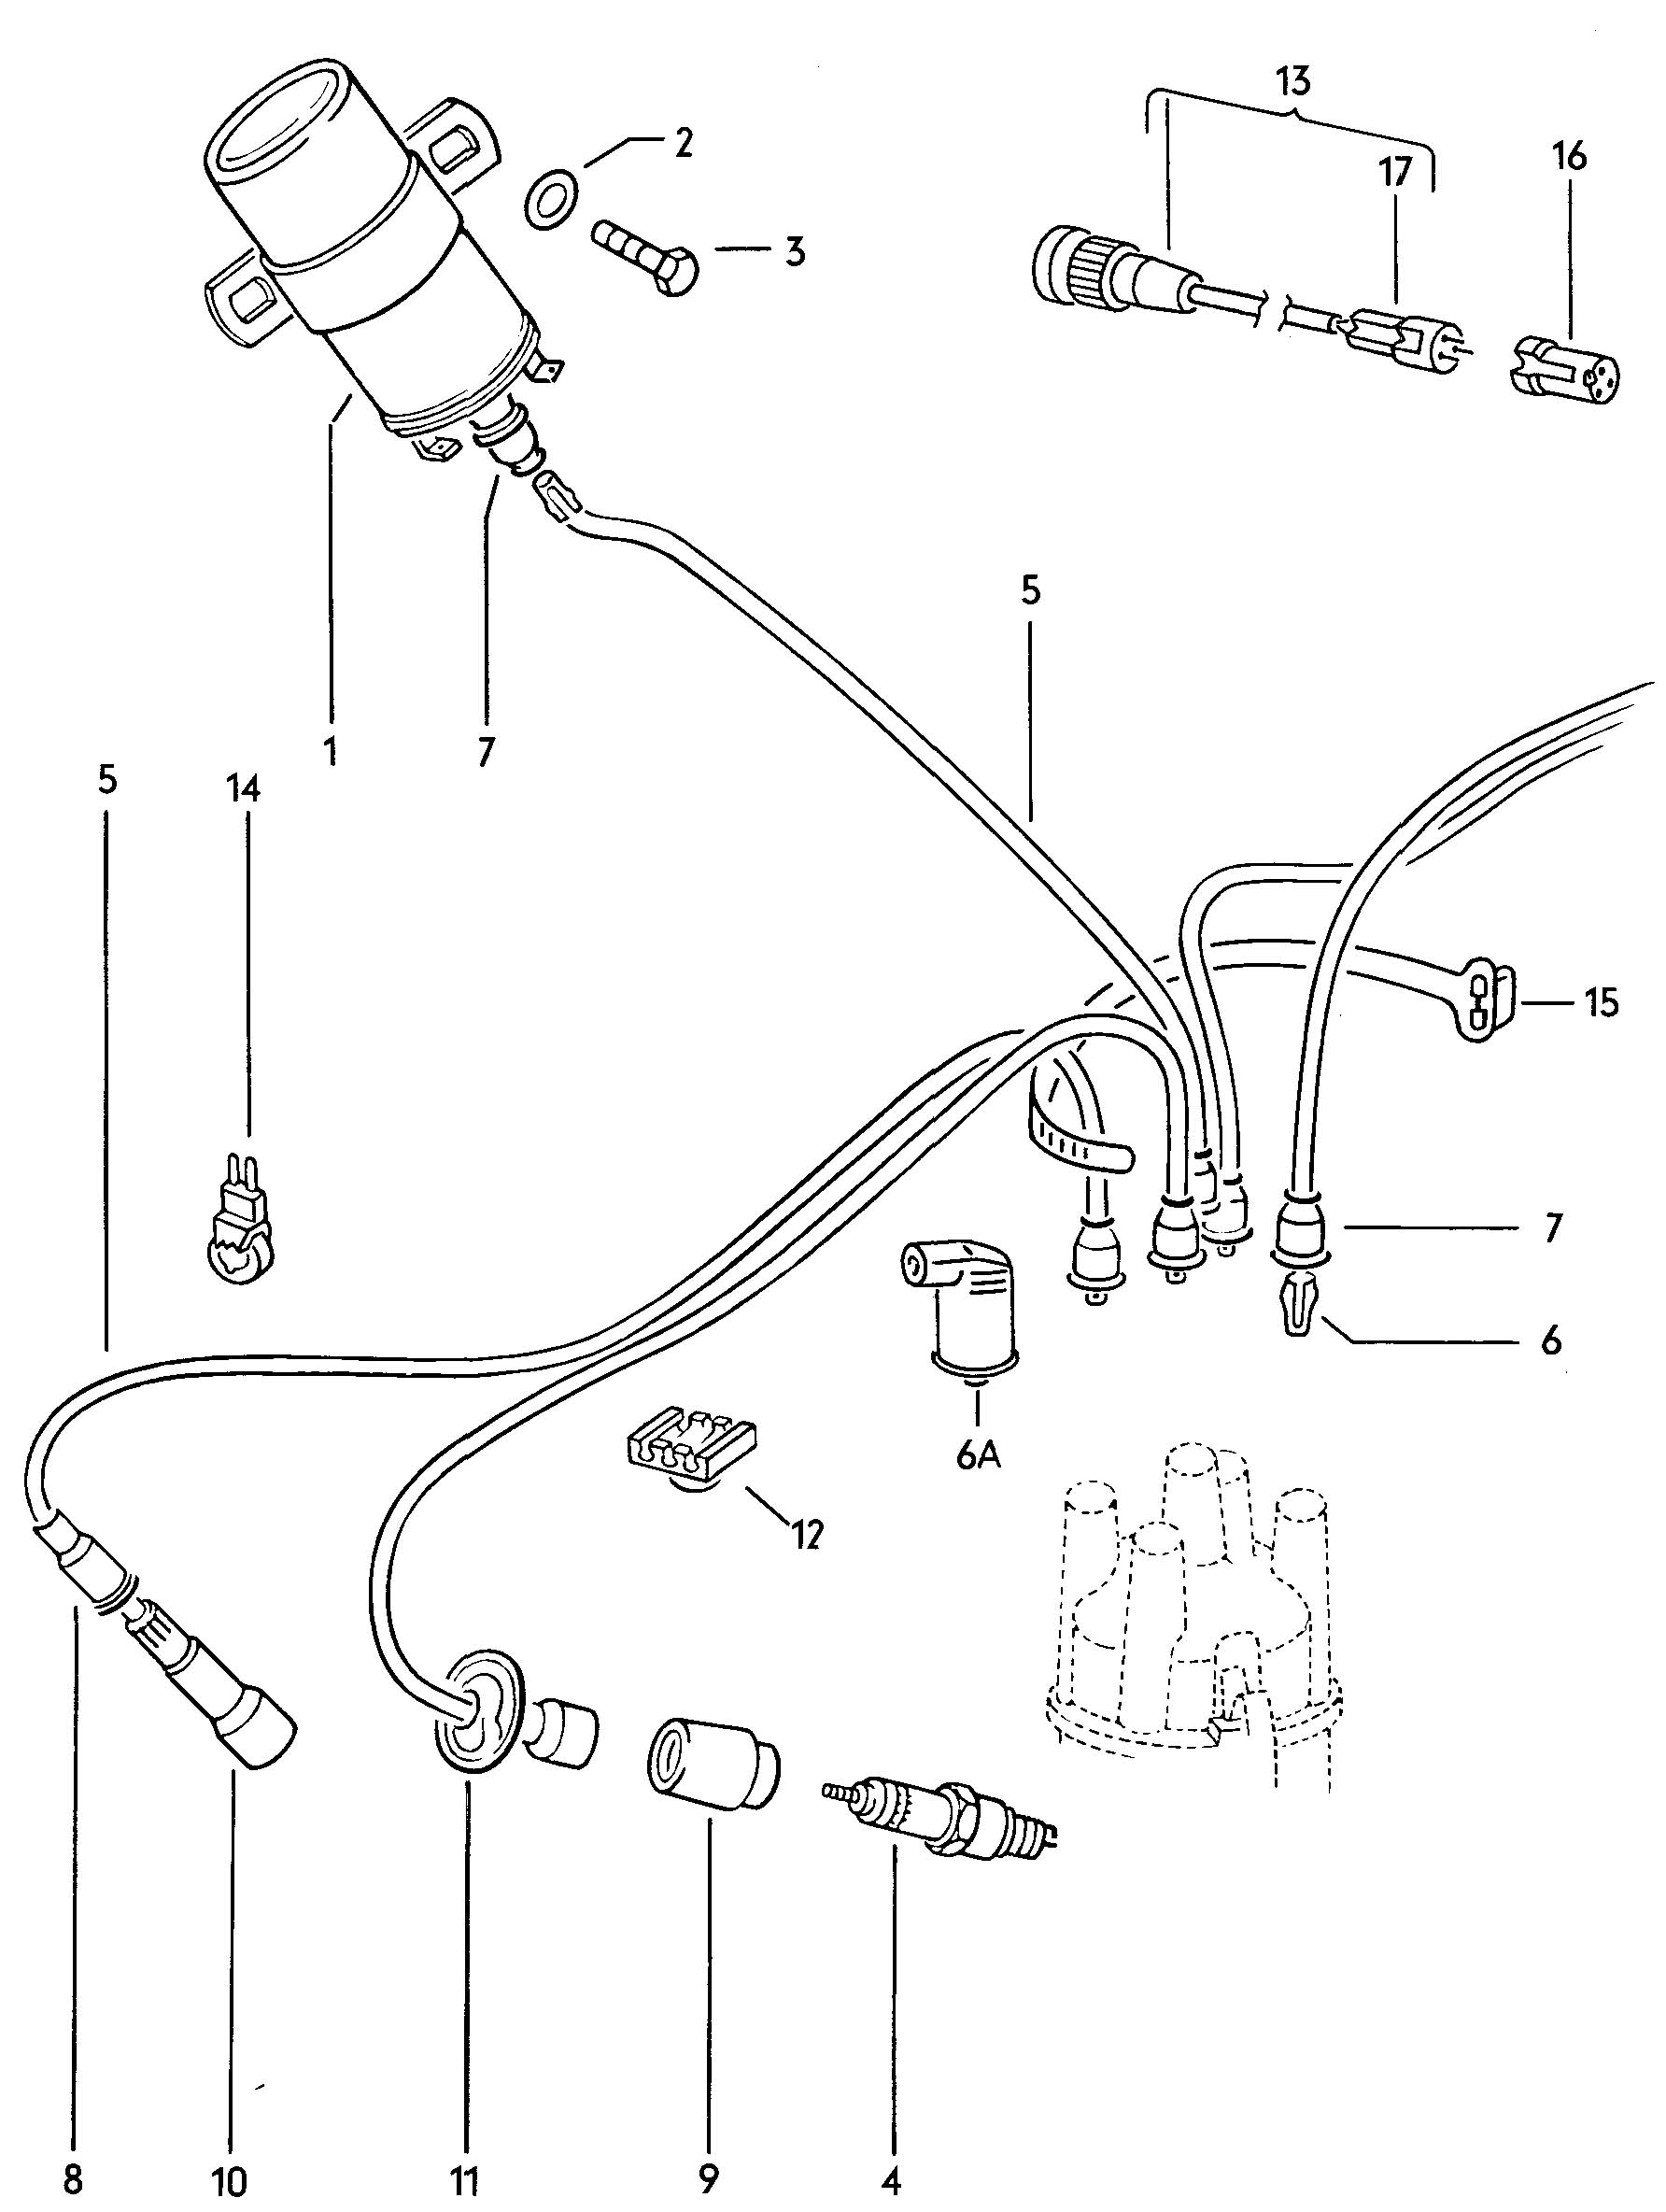 monarch pump wiring diagram 072e48 1960 vw bus wiring diagram wiring library  072e48 1960 vw bus wiring diagram